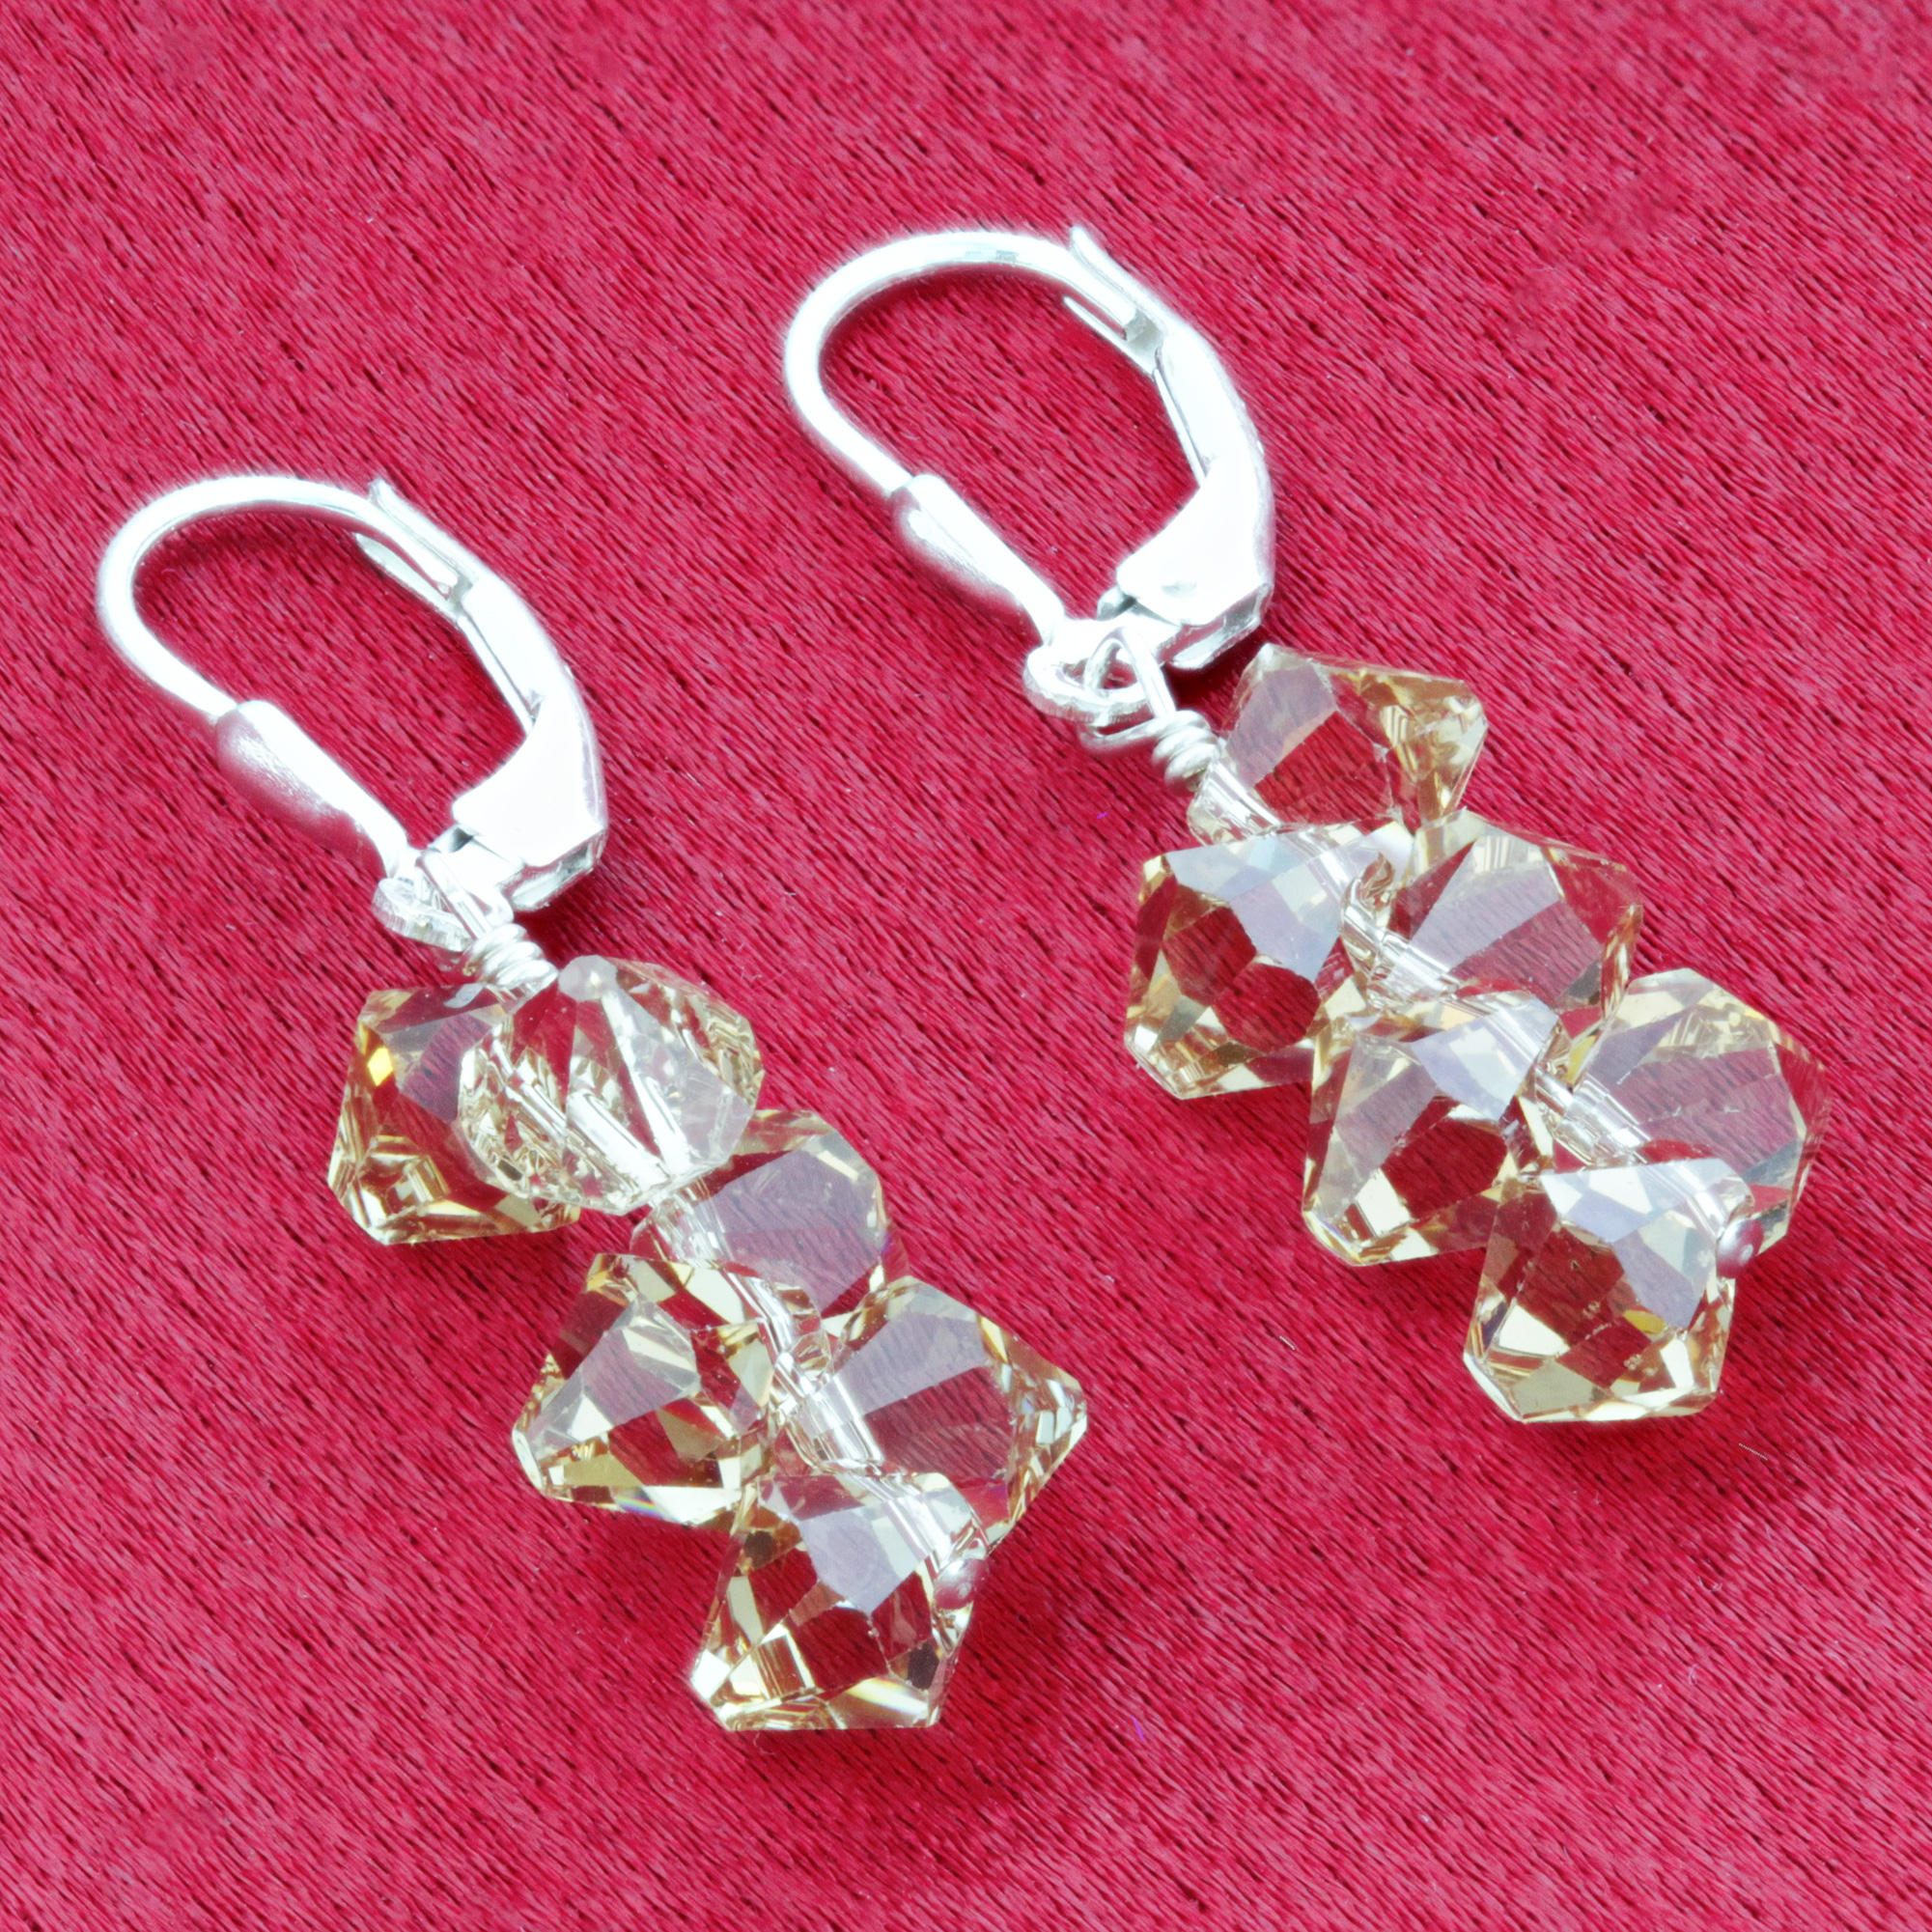 Made-with-Swarovski-Elements-Crystal-Drop-Sterling-Silver-Earrings thumbnail 13